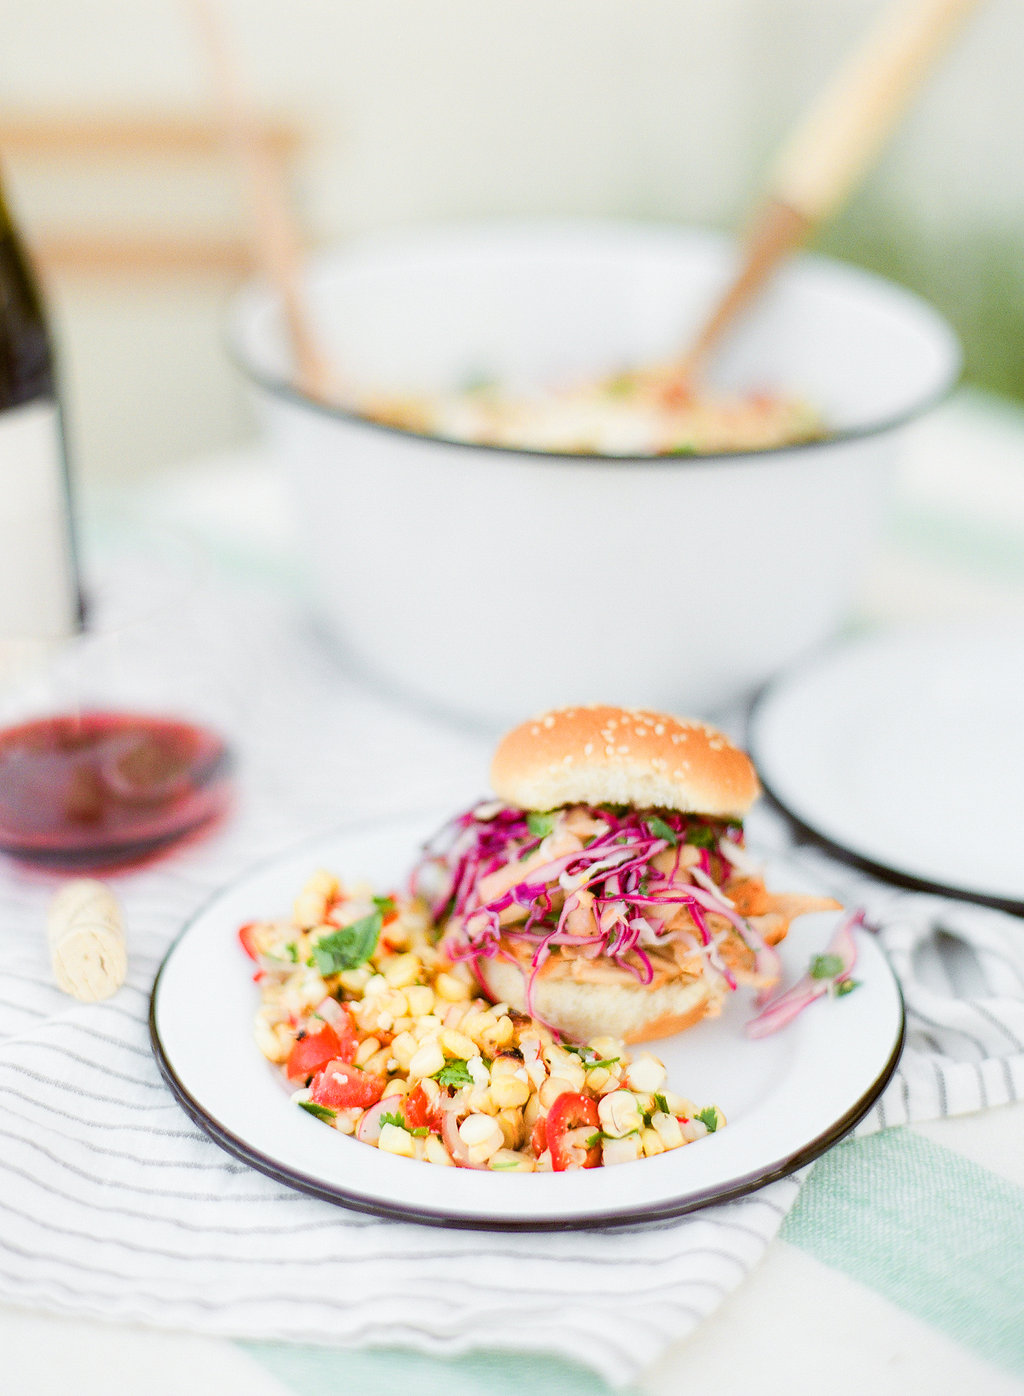 This pulled pork sliders & jalapeno and pineapple slaw recipe is perfect for a backyard bash, summer potluck or dinner party.